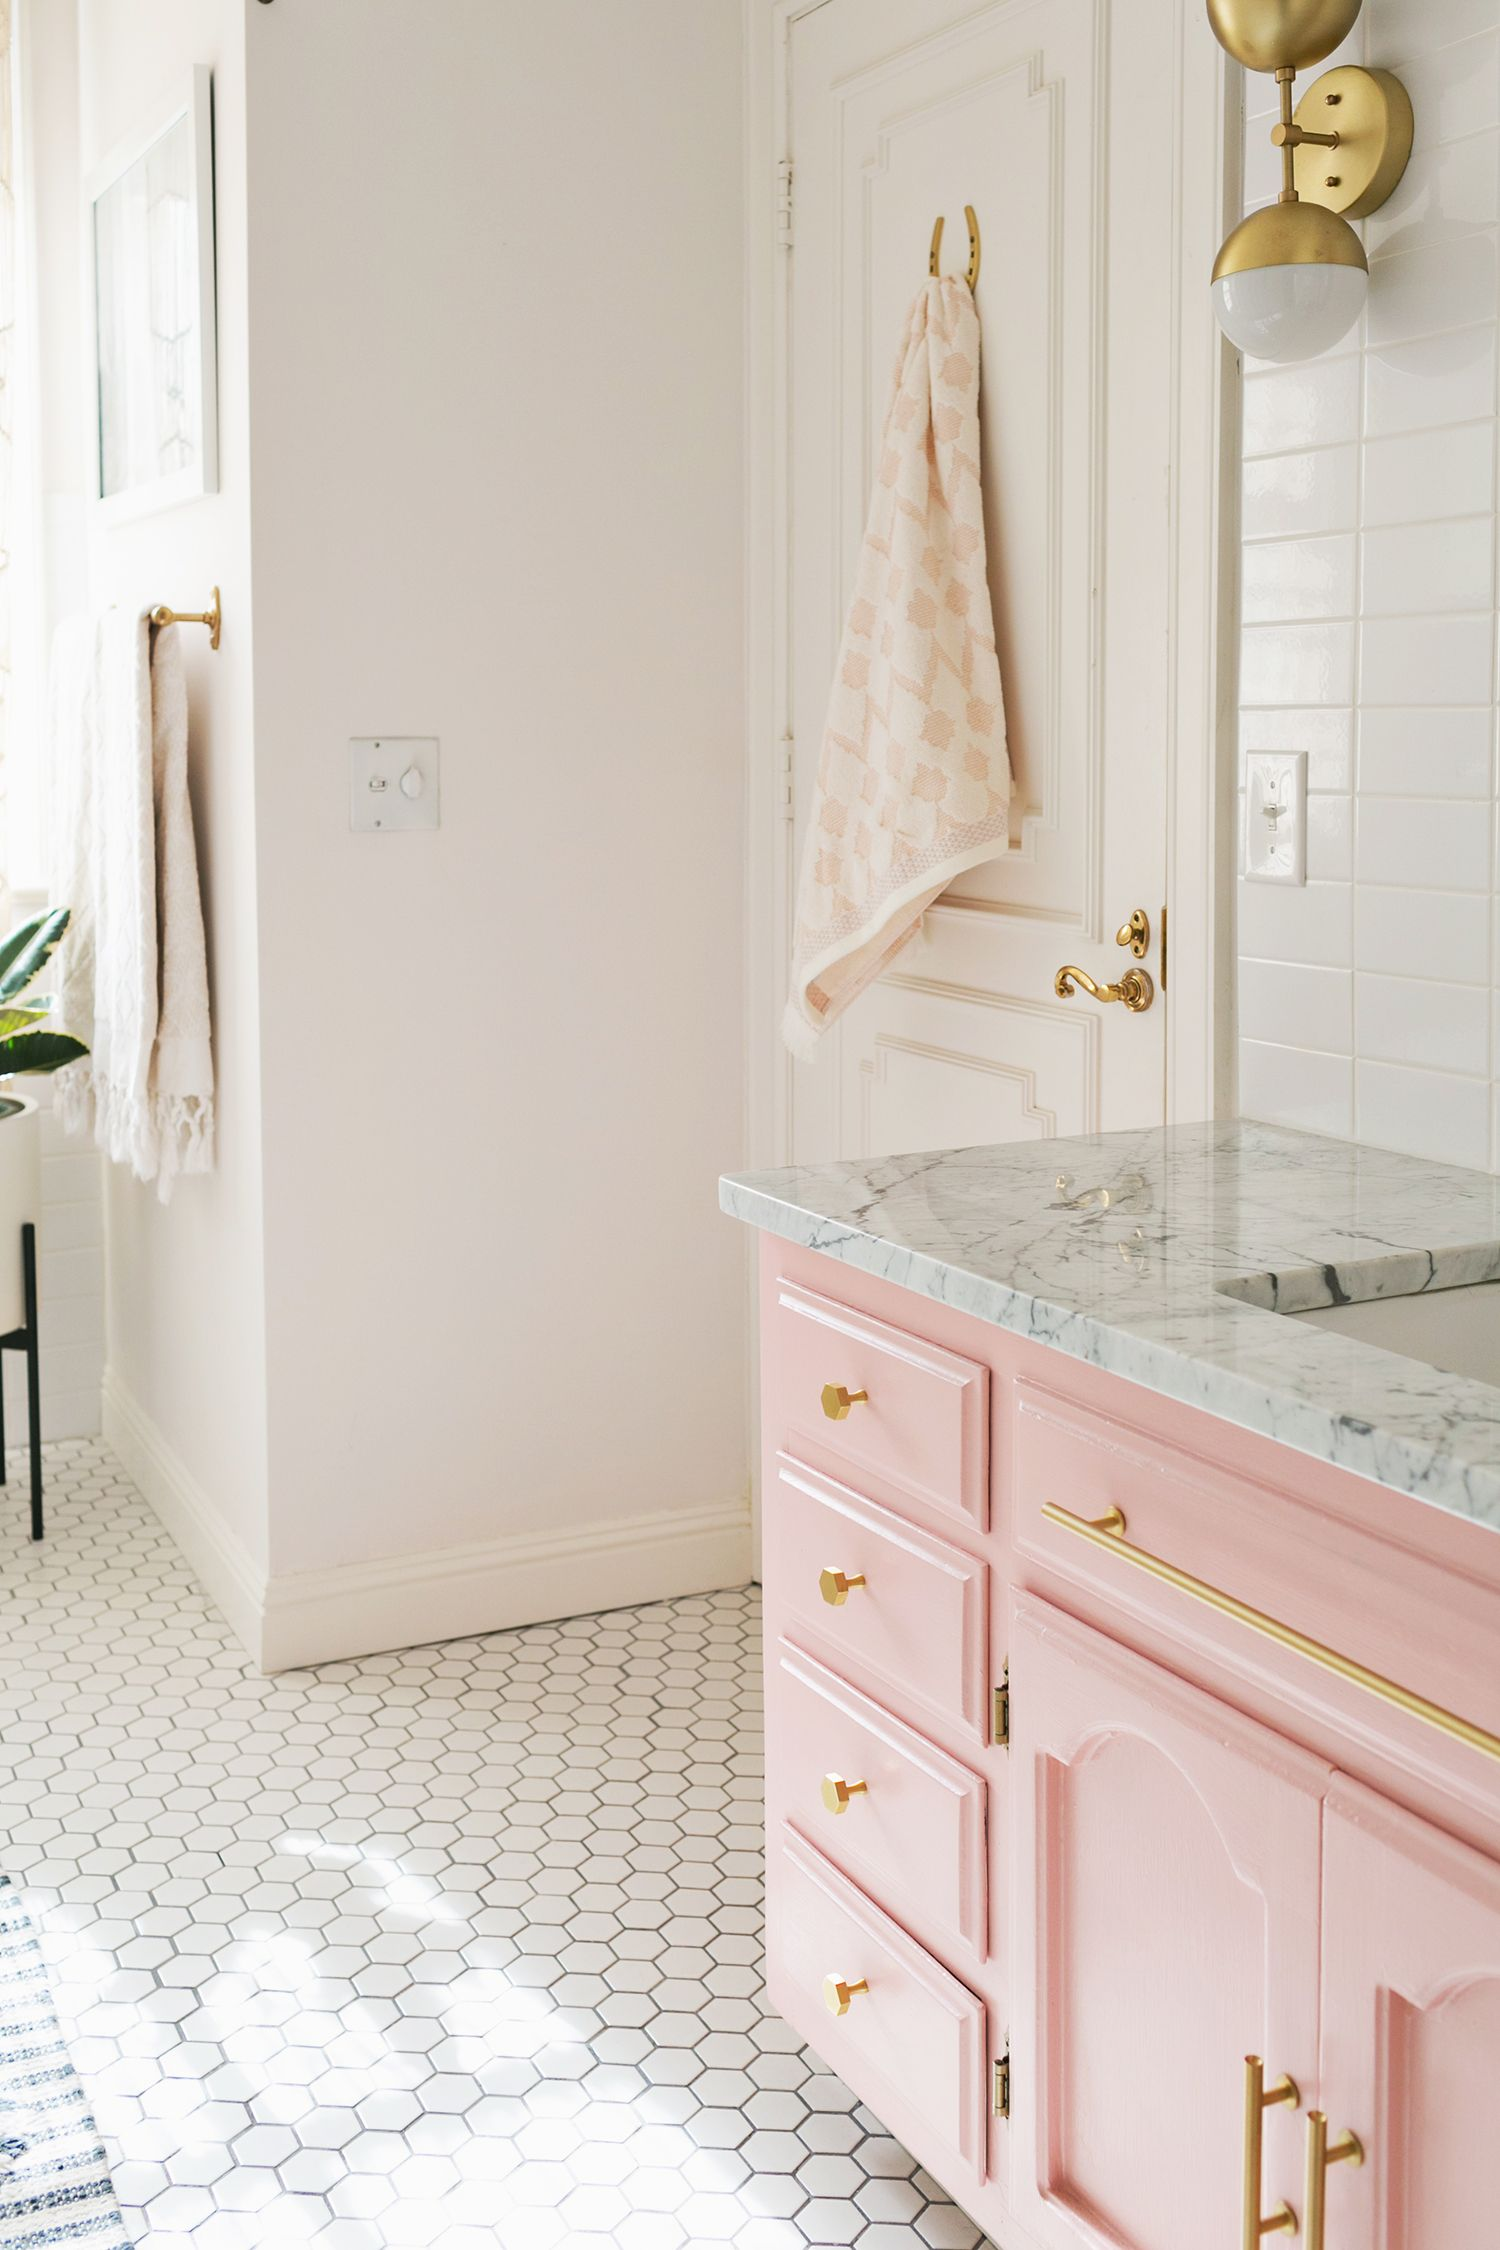 blush cabinets marble bathroom gold fixtures white hexagon tile in bathroom